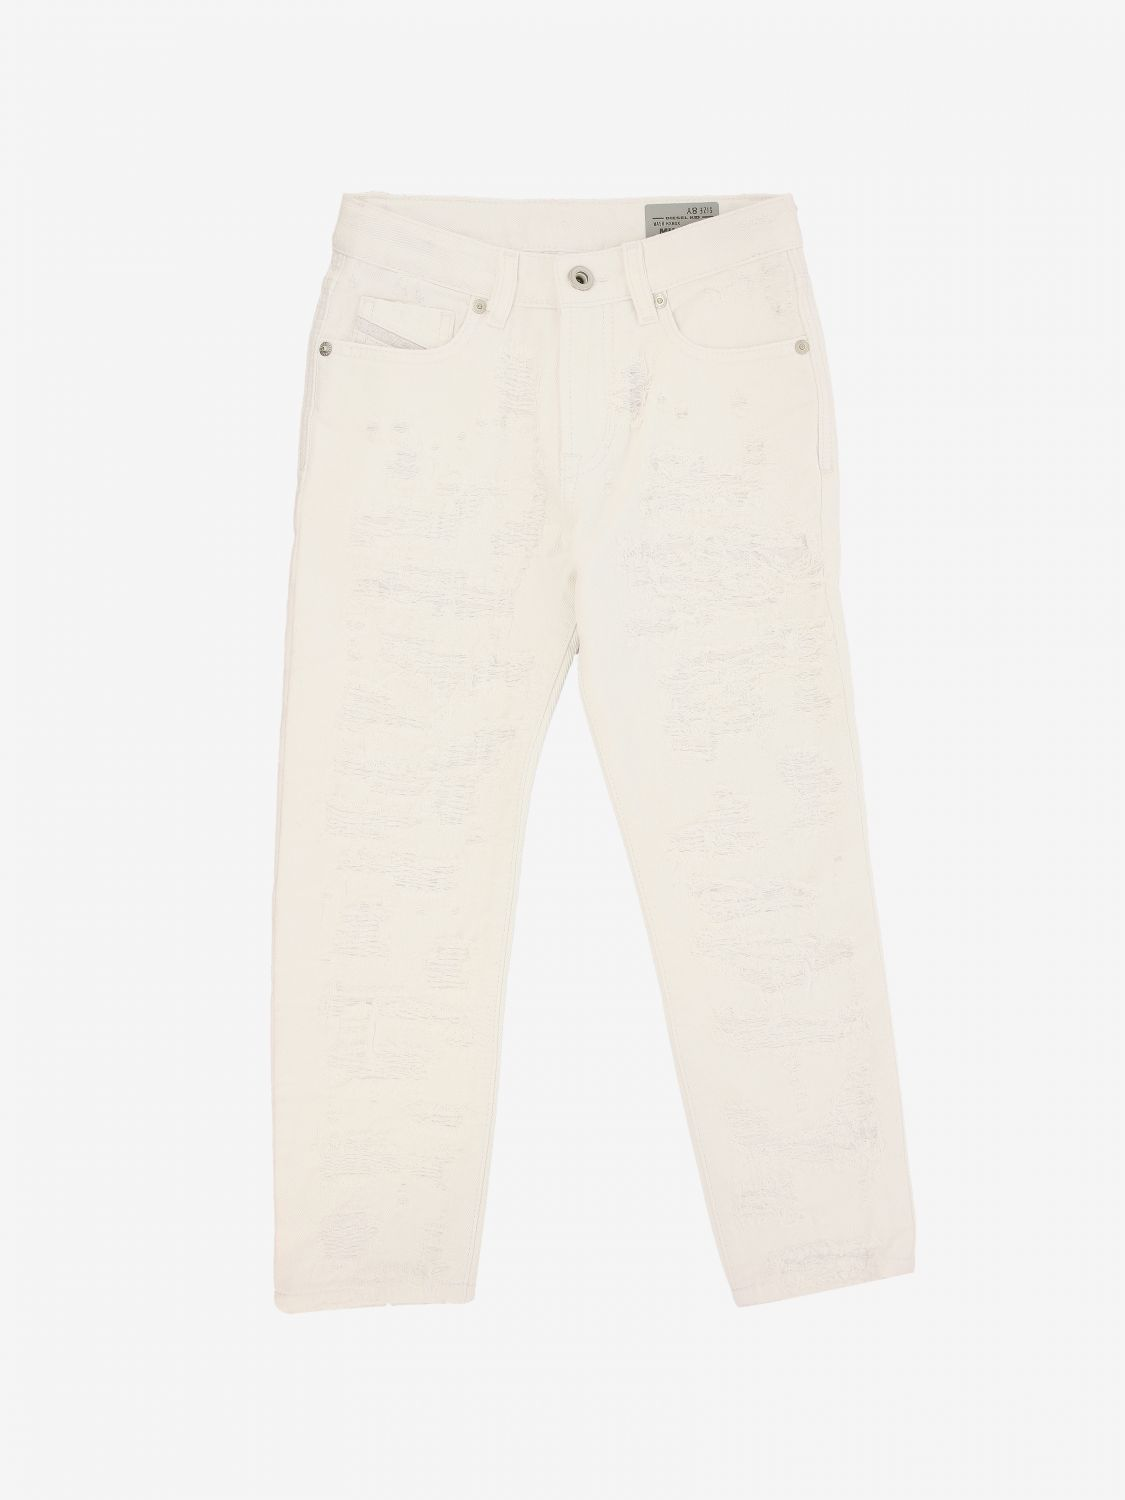 Diesel trousers with 5 pockets white 1